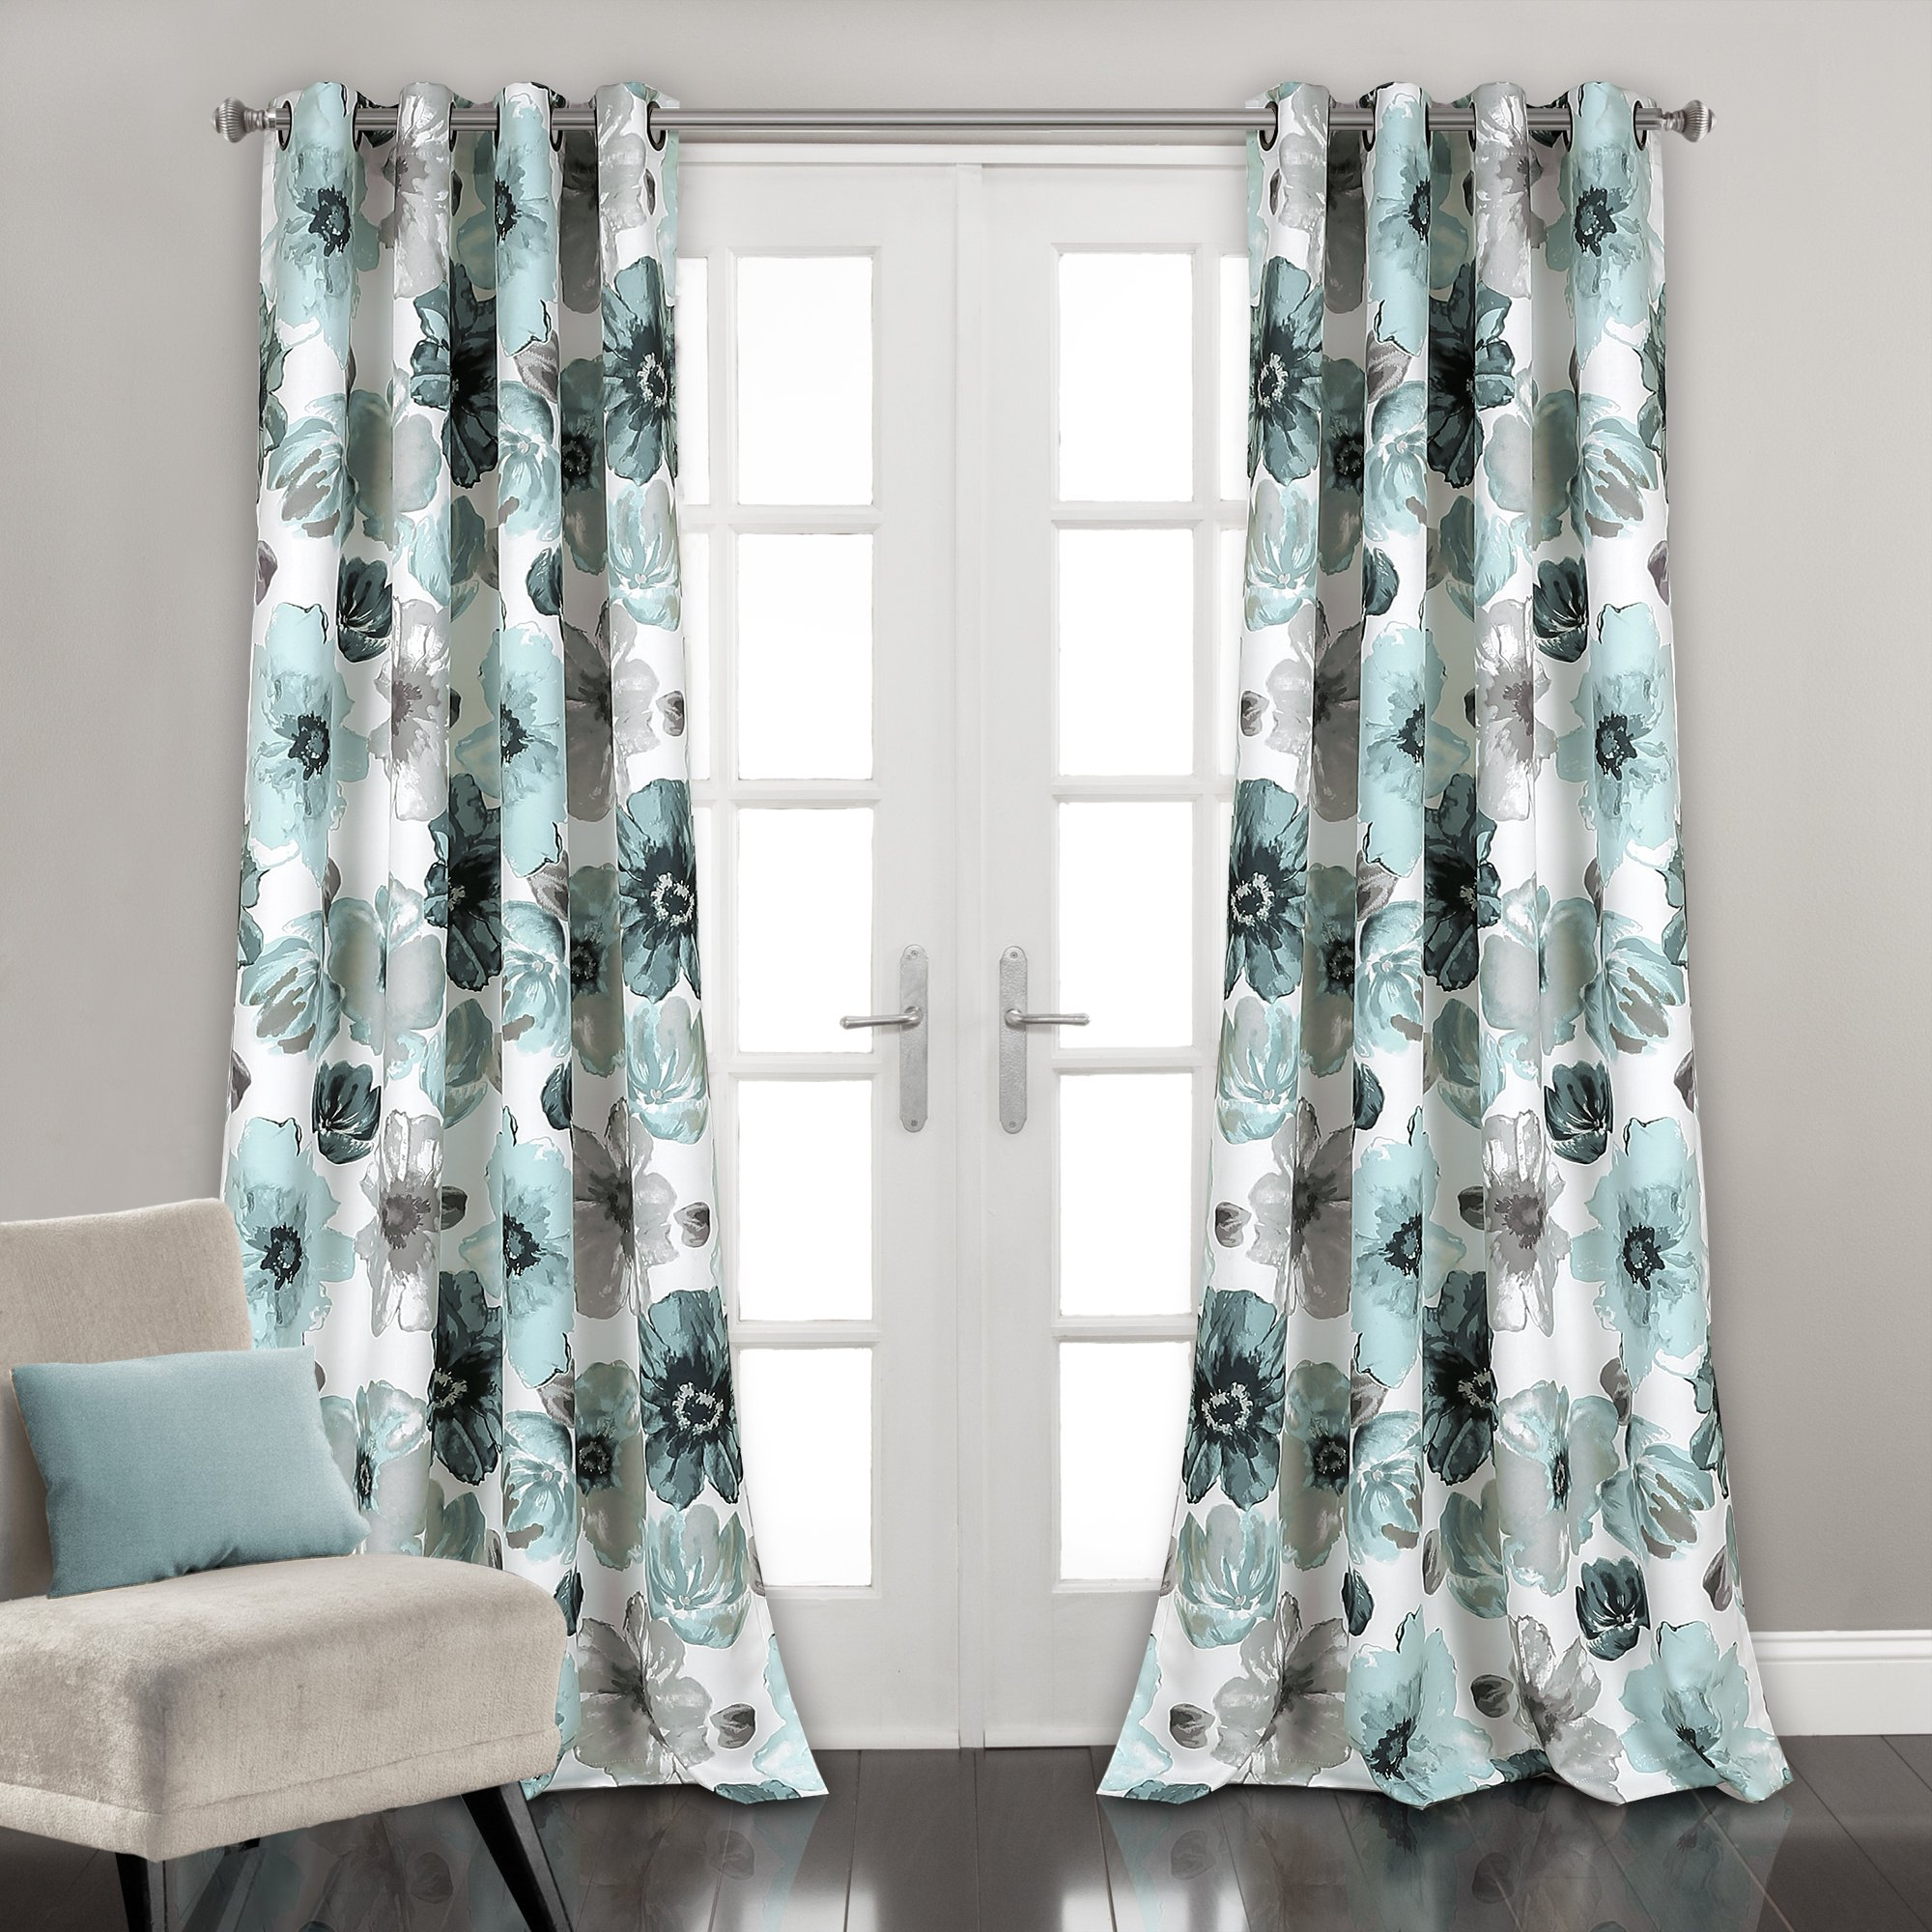 """Details About Lush Decor Lush Décor Leah Room Darkening Window Curtain, Panel Pair 84"""" X 52"""", With Regard To Most Recently Released Julia Striped Room Darkening Window Curtain Panel Pairs (View 6 of 20)"""